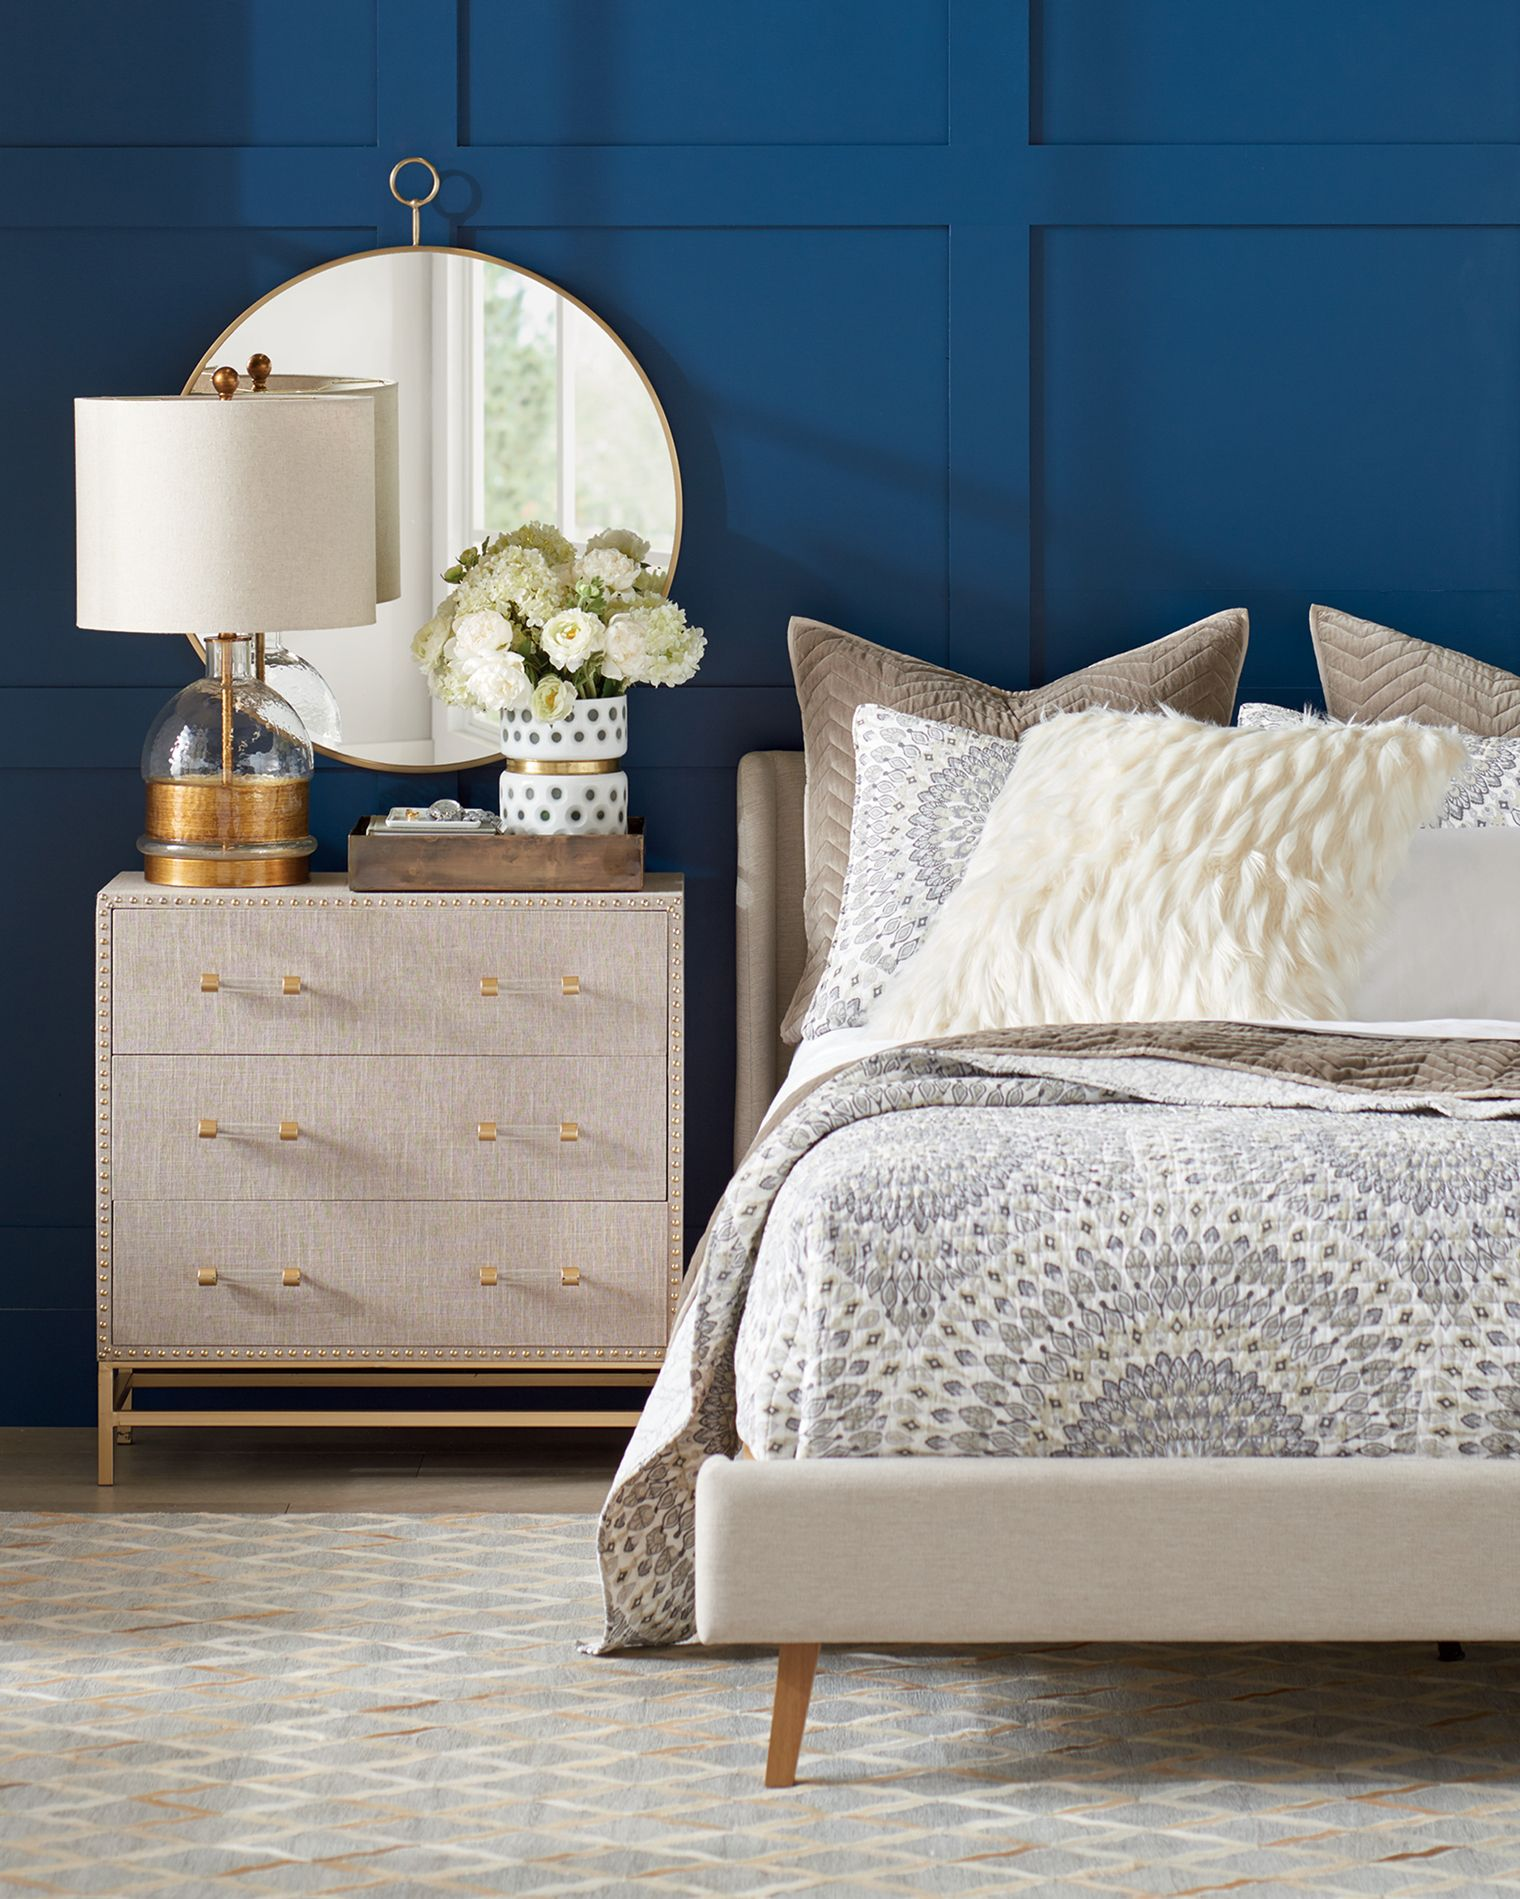 Three Ways To Create Style A Bedside Table Decor Dorm Room